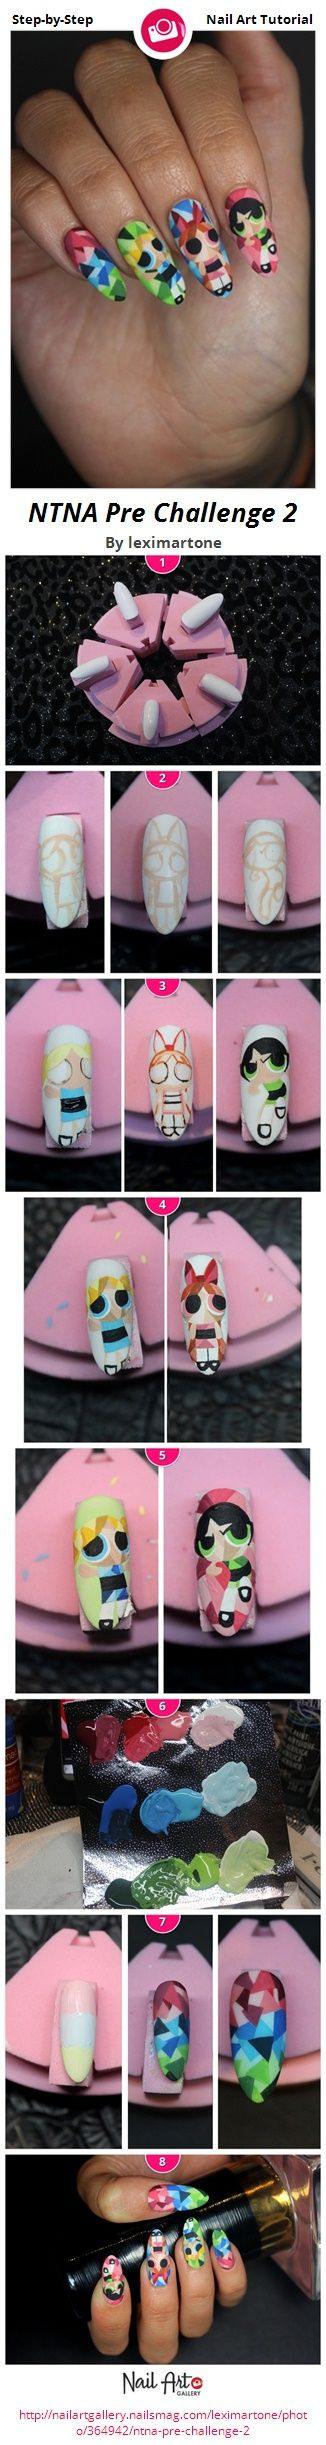 The Powerpuff Girls - Next Top Nail Artist Pre Challenge 2 by leximartone from Nail Art Gallery